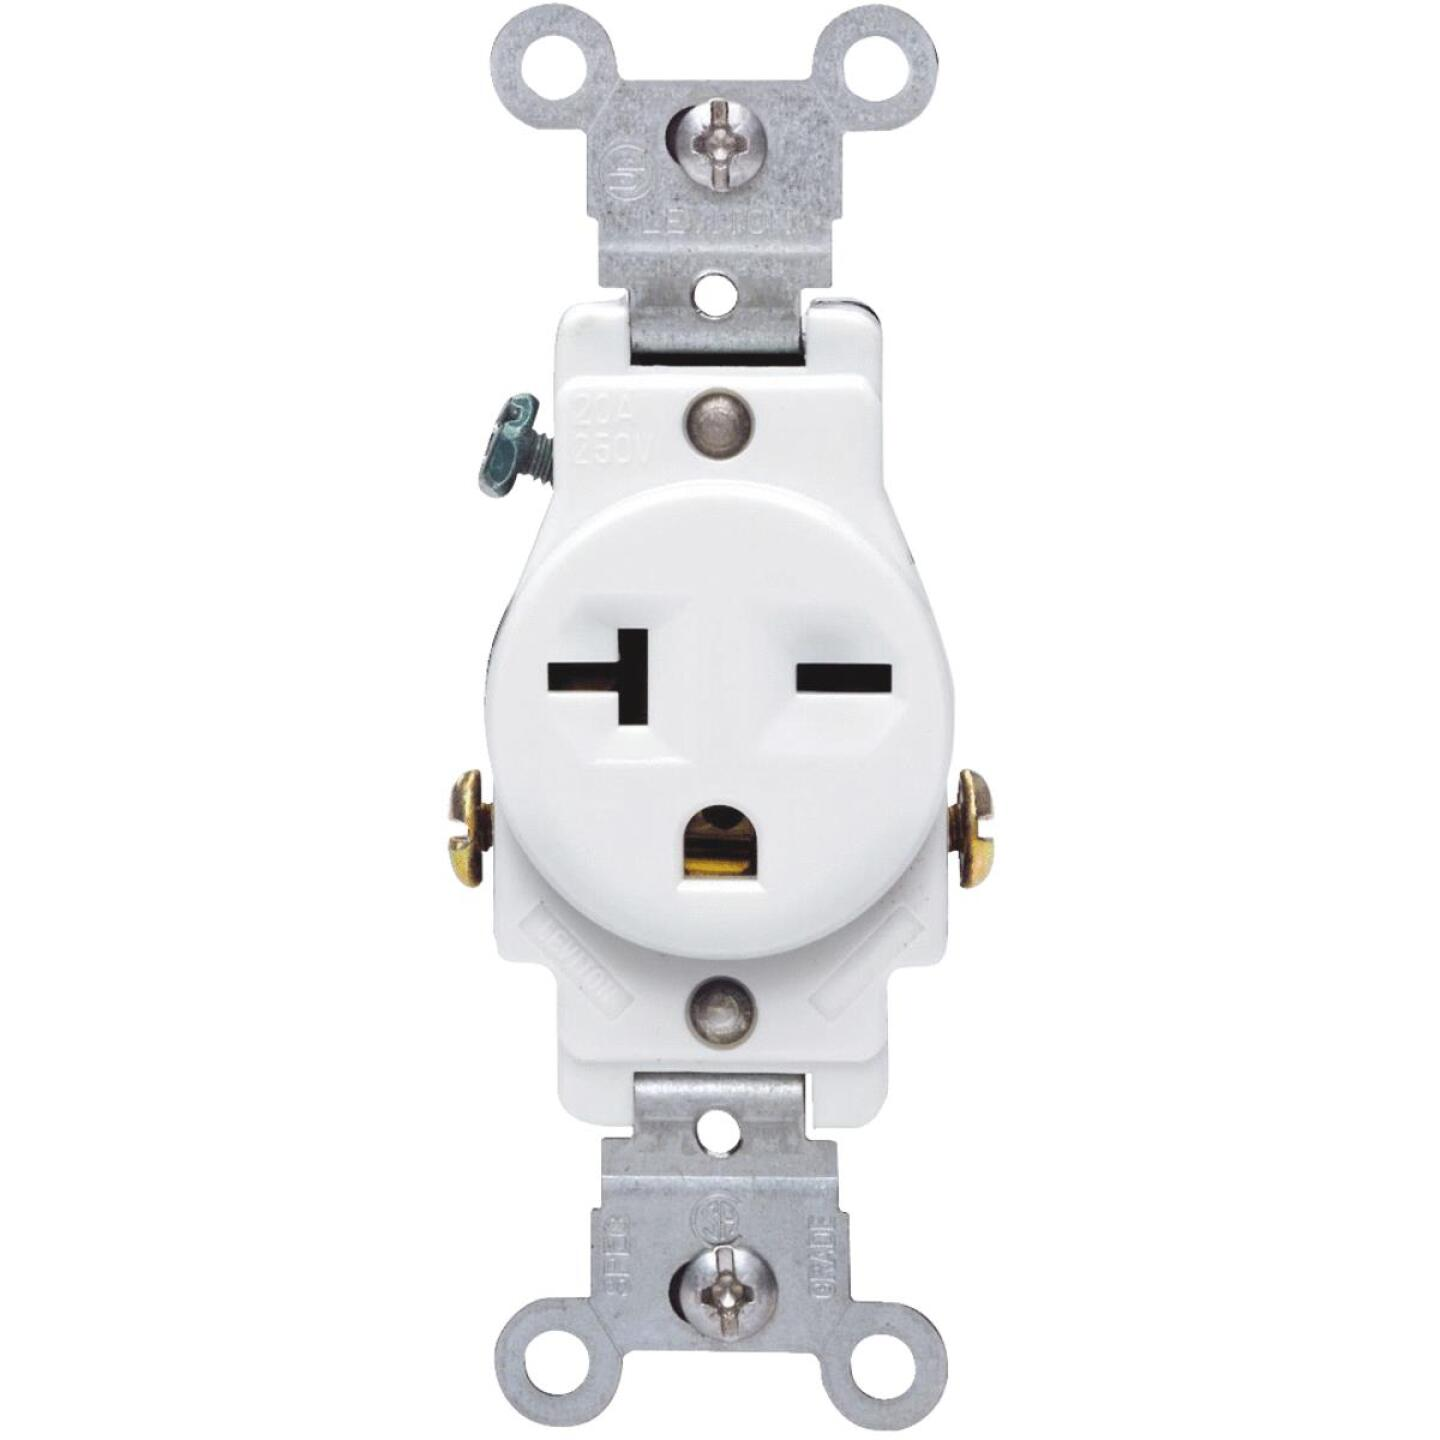 Leviton 20A White Heavy-Duty 6-20R Grounding Single Outlet Image 4